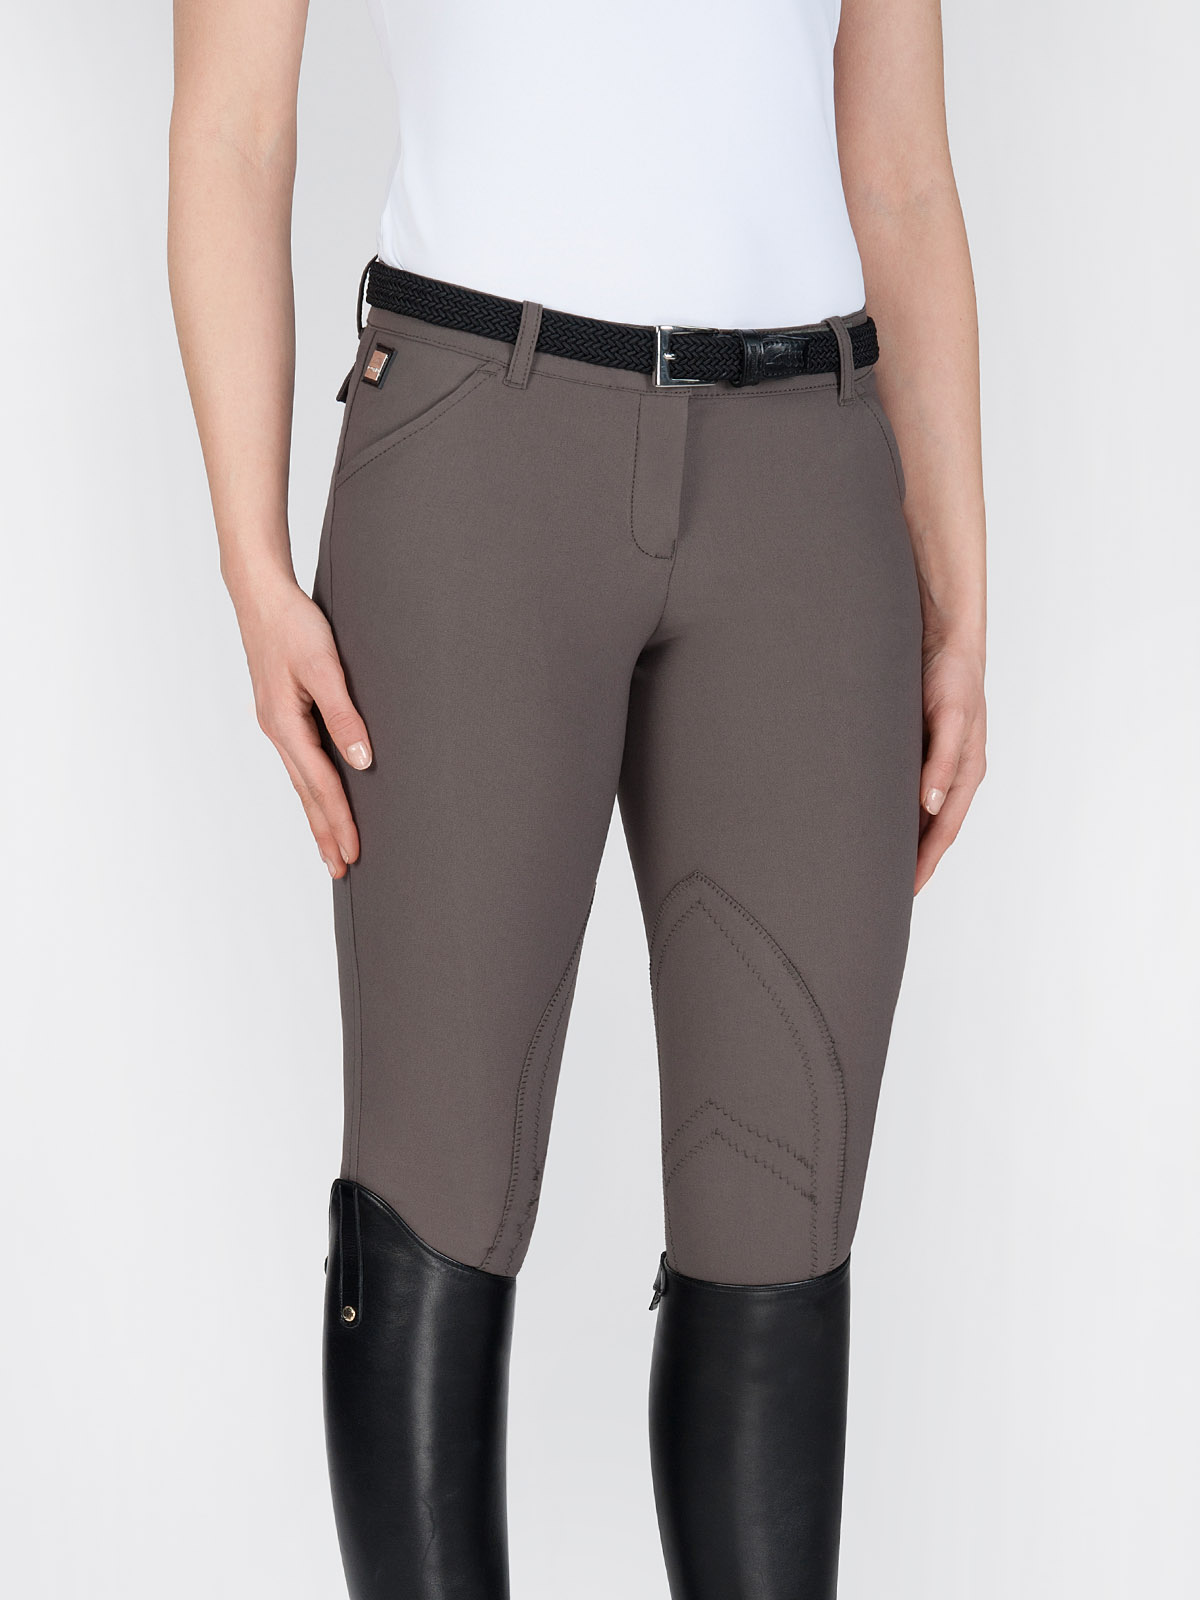 Boston Women's knee patch riding breeches in performance fabric